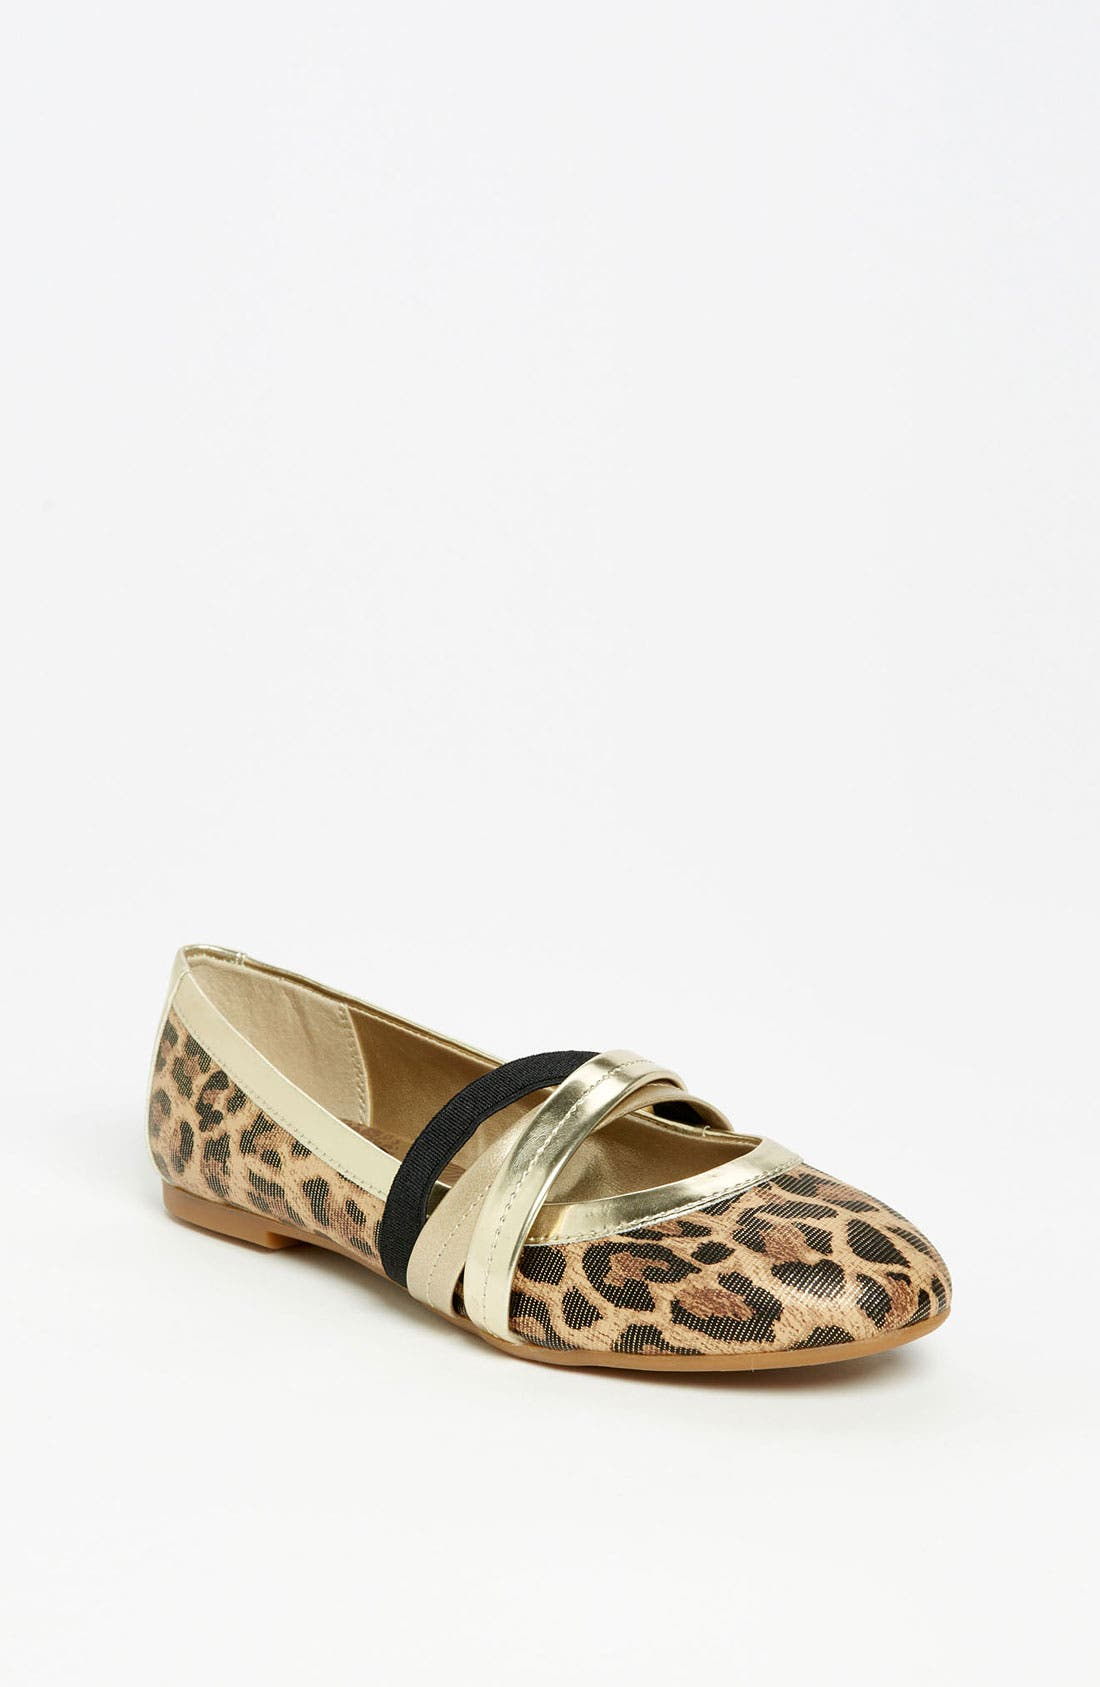 Alternate Image 1 Selected - Jessica Simpson 'Mandi' Flat (Toddler, Little Kid & Big Kid)